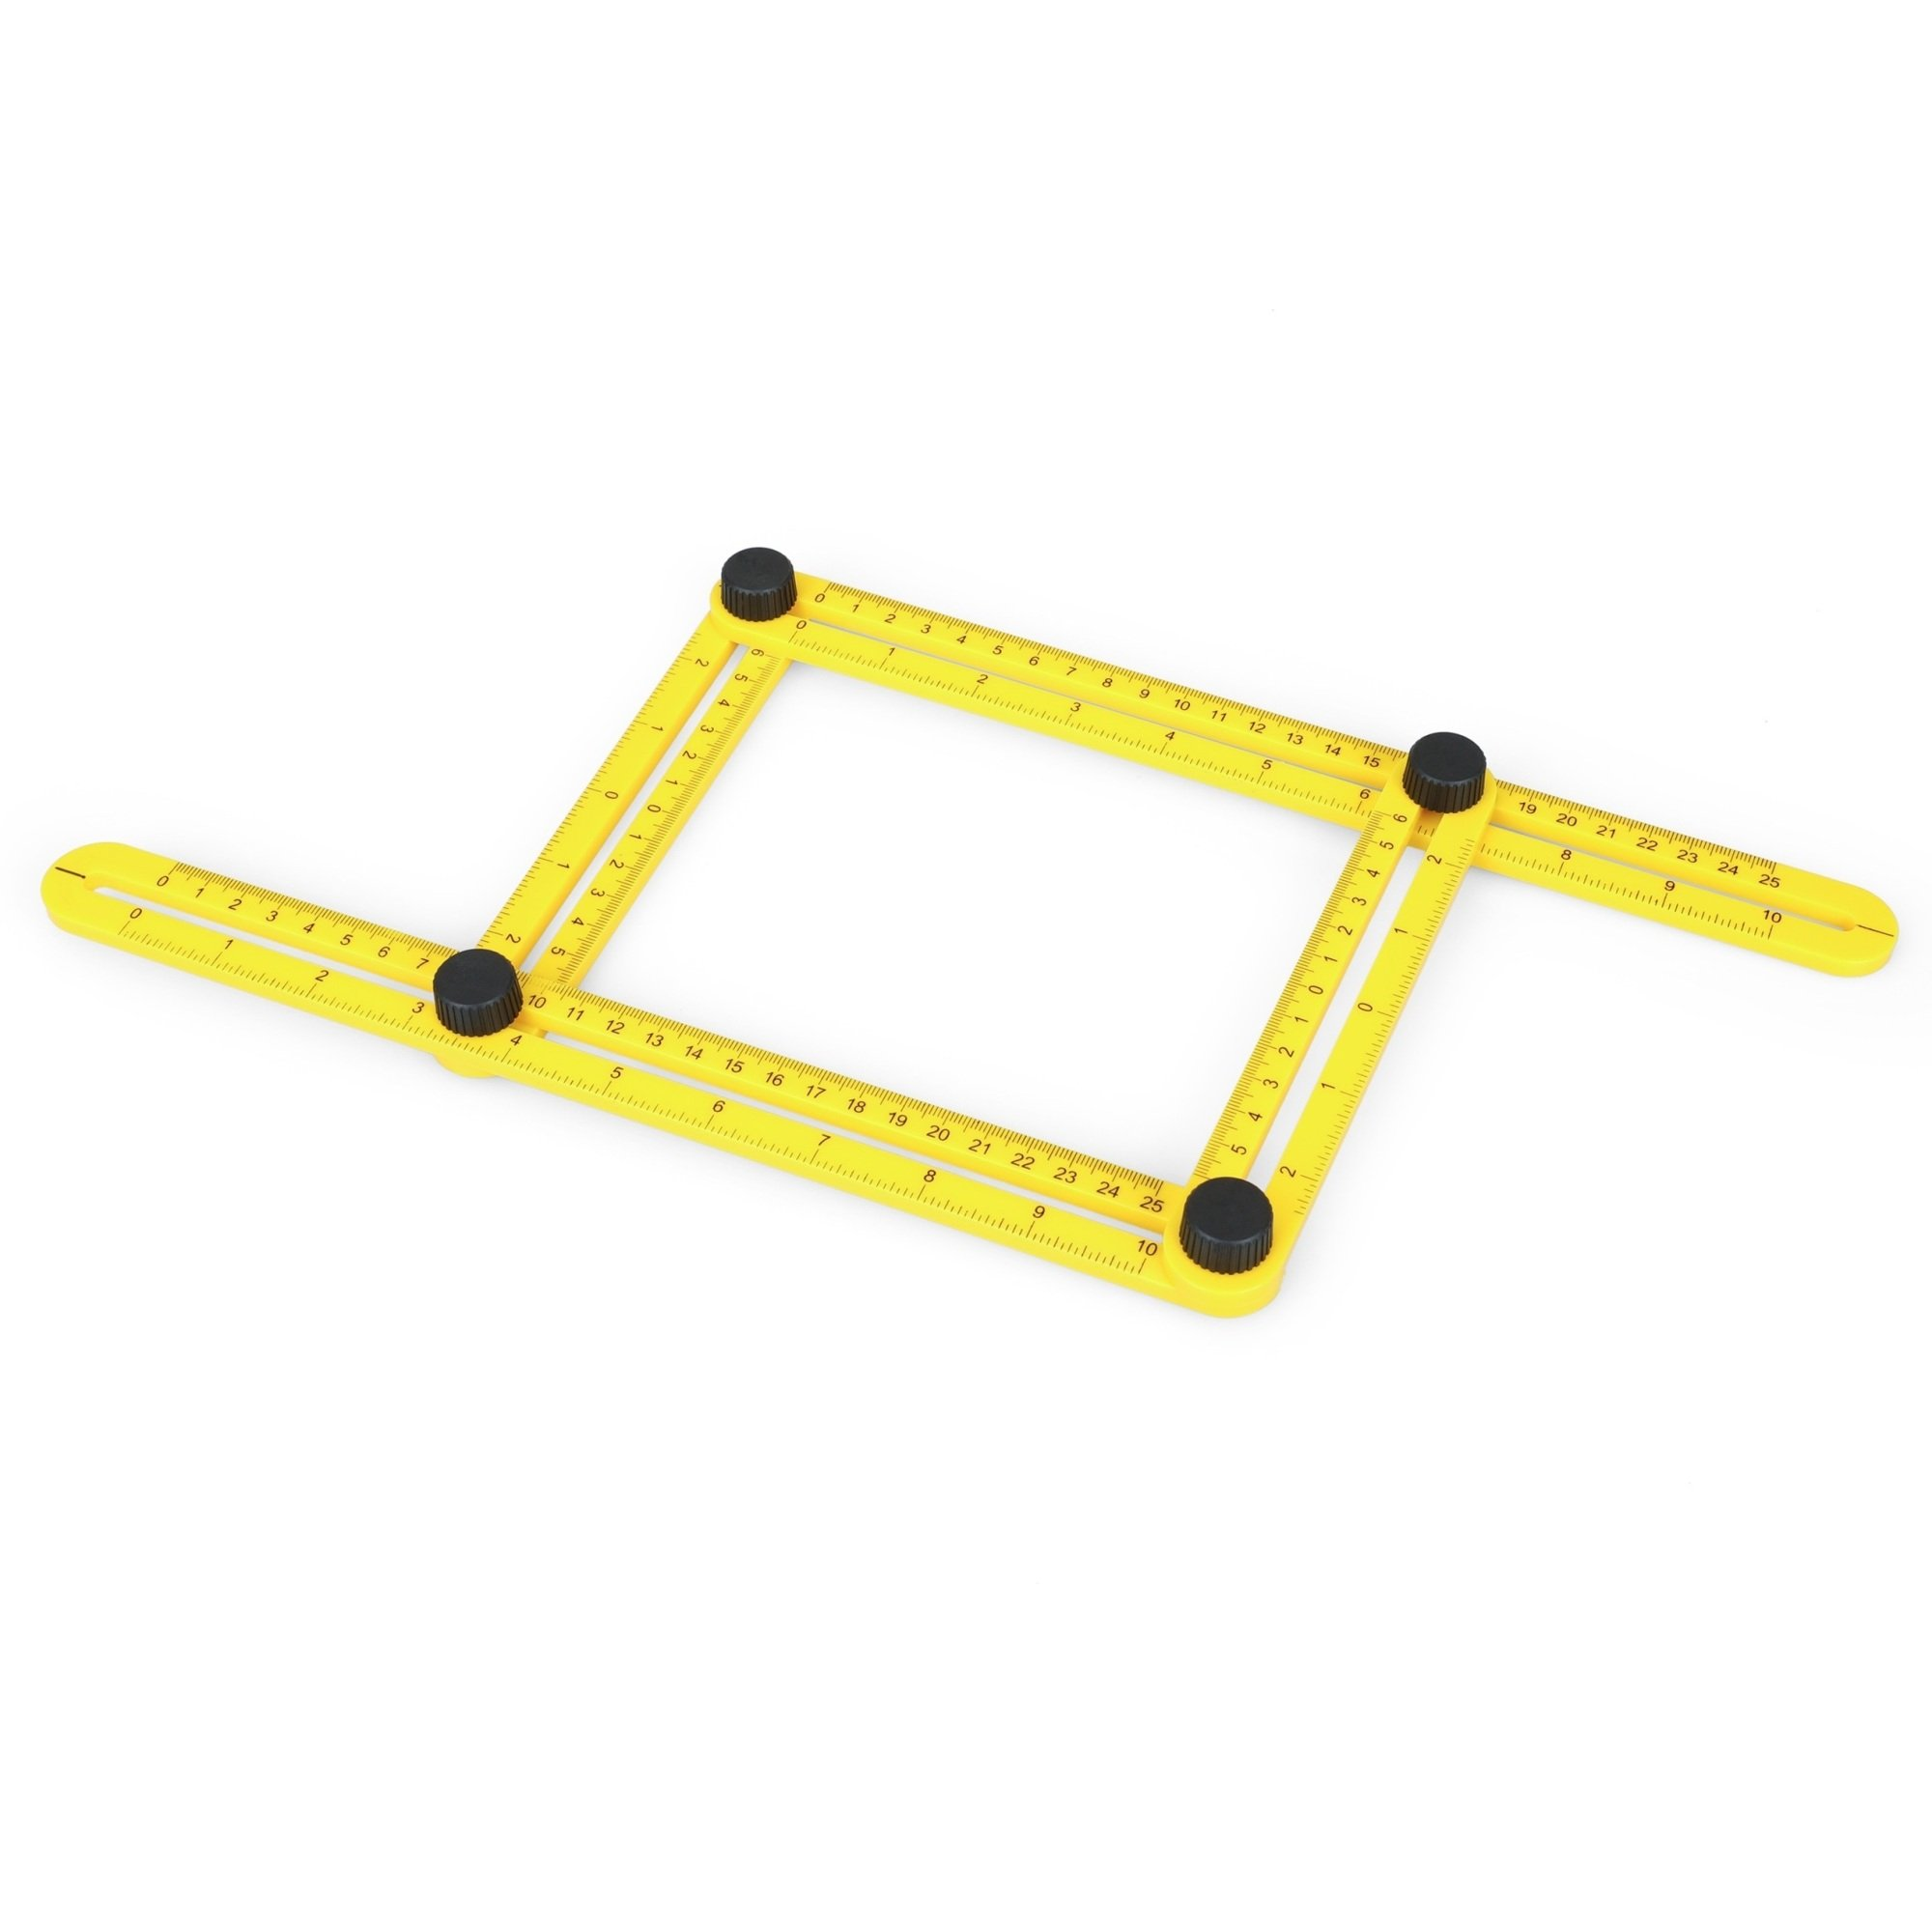 VINIUVI Angle-izer Template Tool, Ultimate Multi-Angle Measuring Ruler for Builders, Craftsmen and DIY-ers